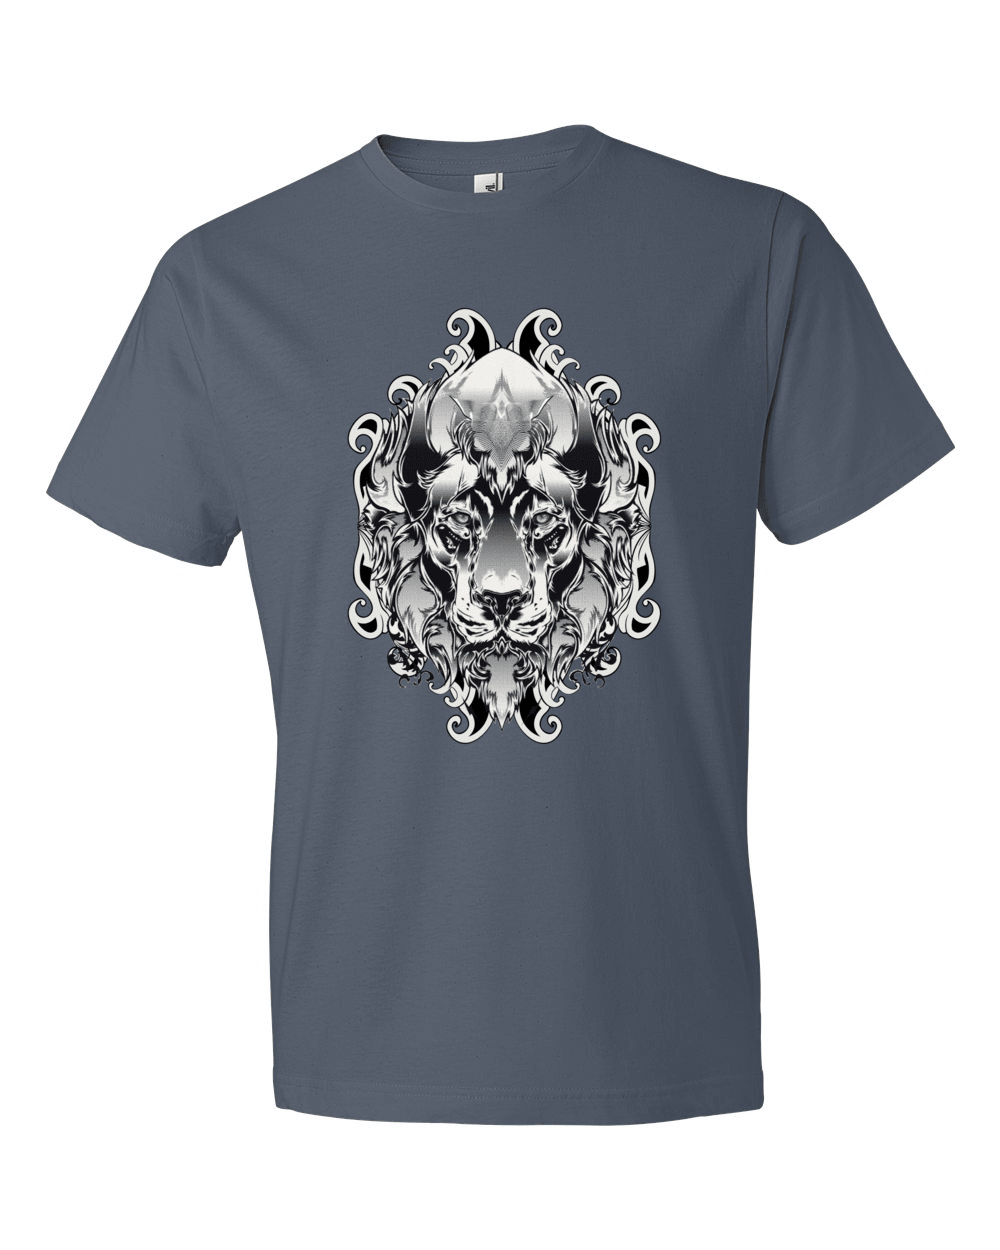 Apparel - Lion Heart Tee -  - District 31 - 1